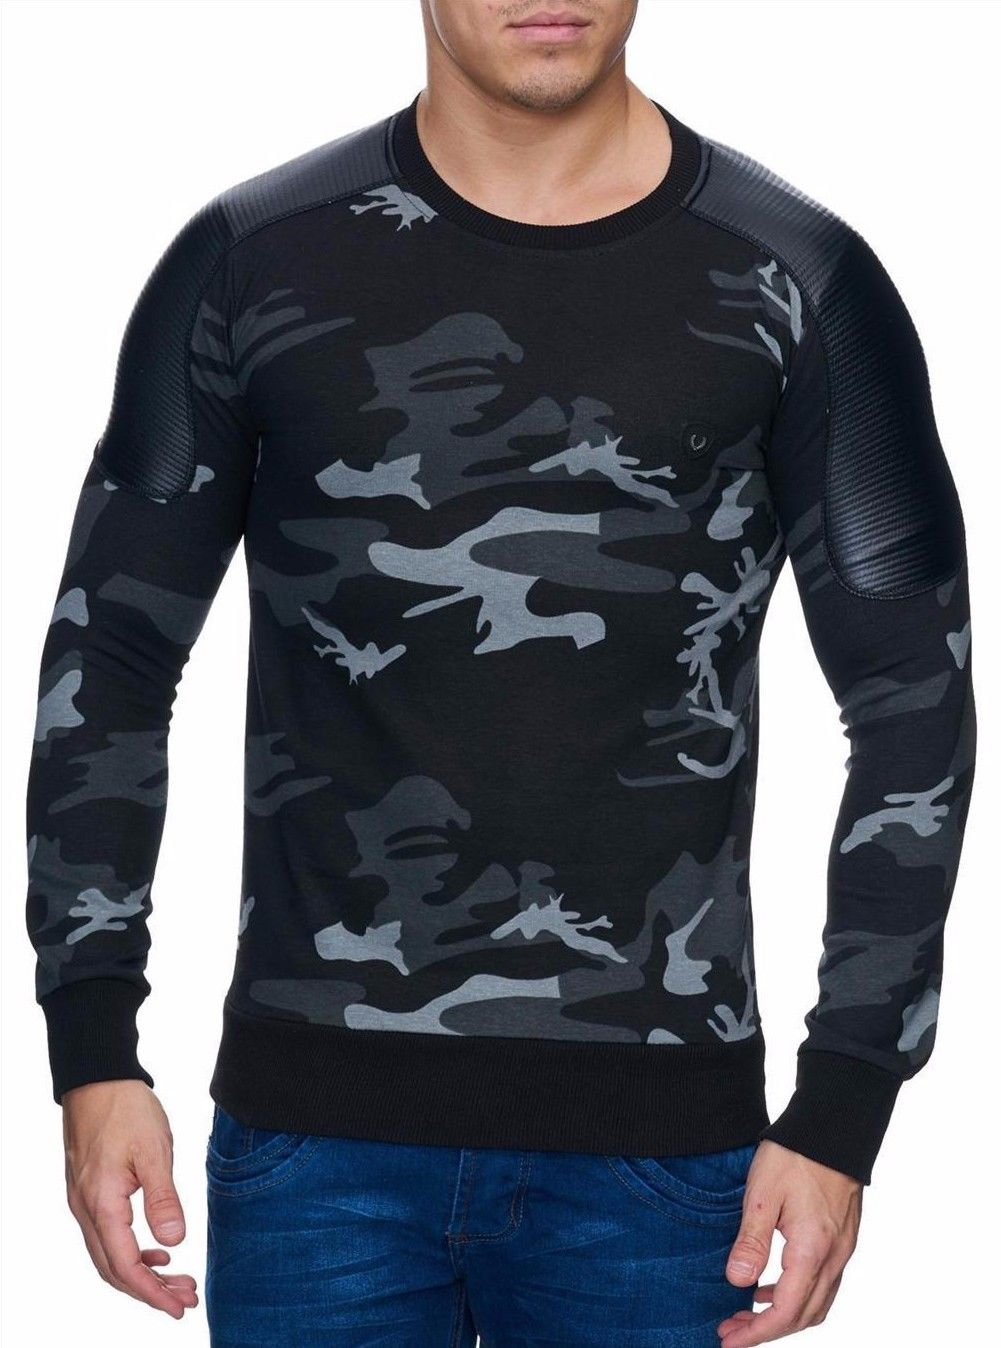 herren sweatshirt camouflage pullover sweater longshirt. Black Bedroom Furniture Sets. Home Design Ideas